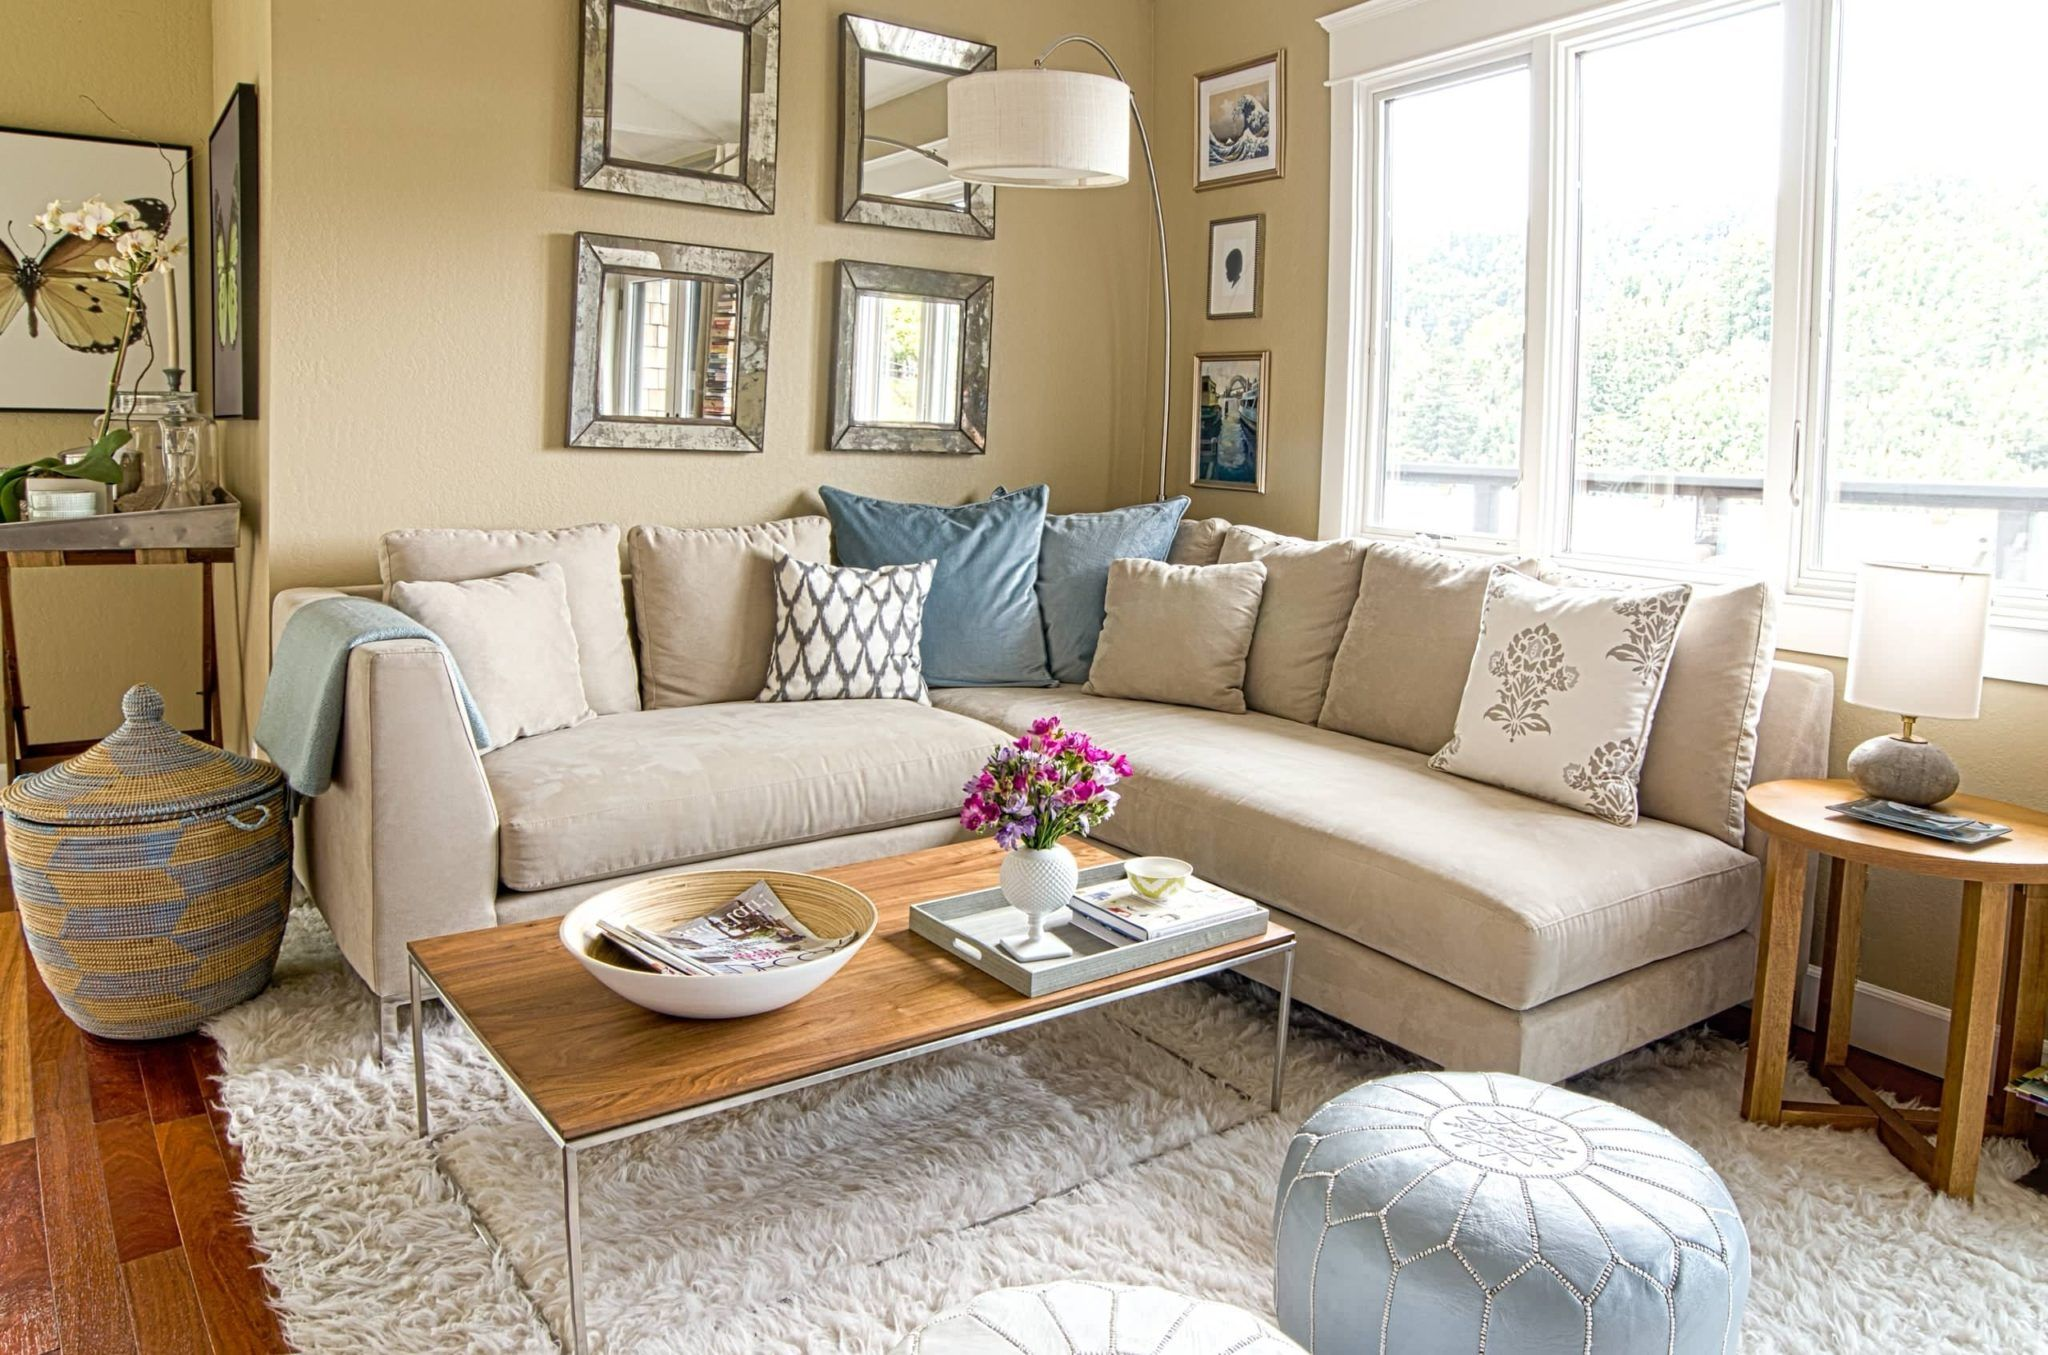 20+ Fresh and Beauty White Living Room Ideas images